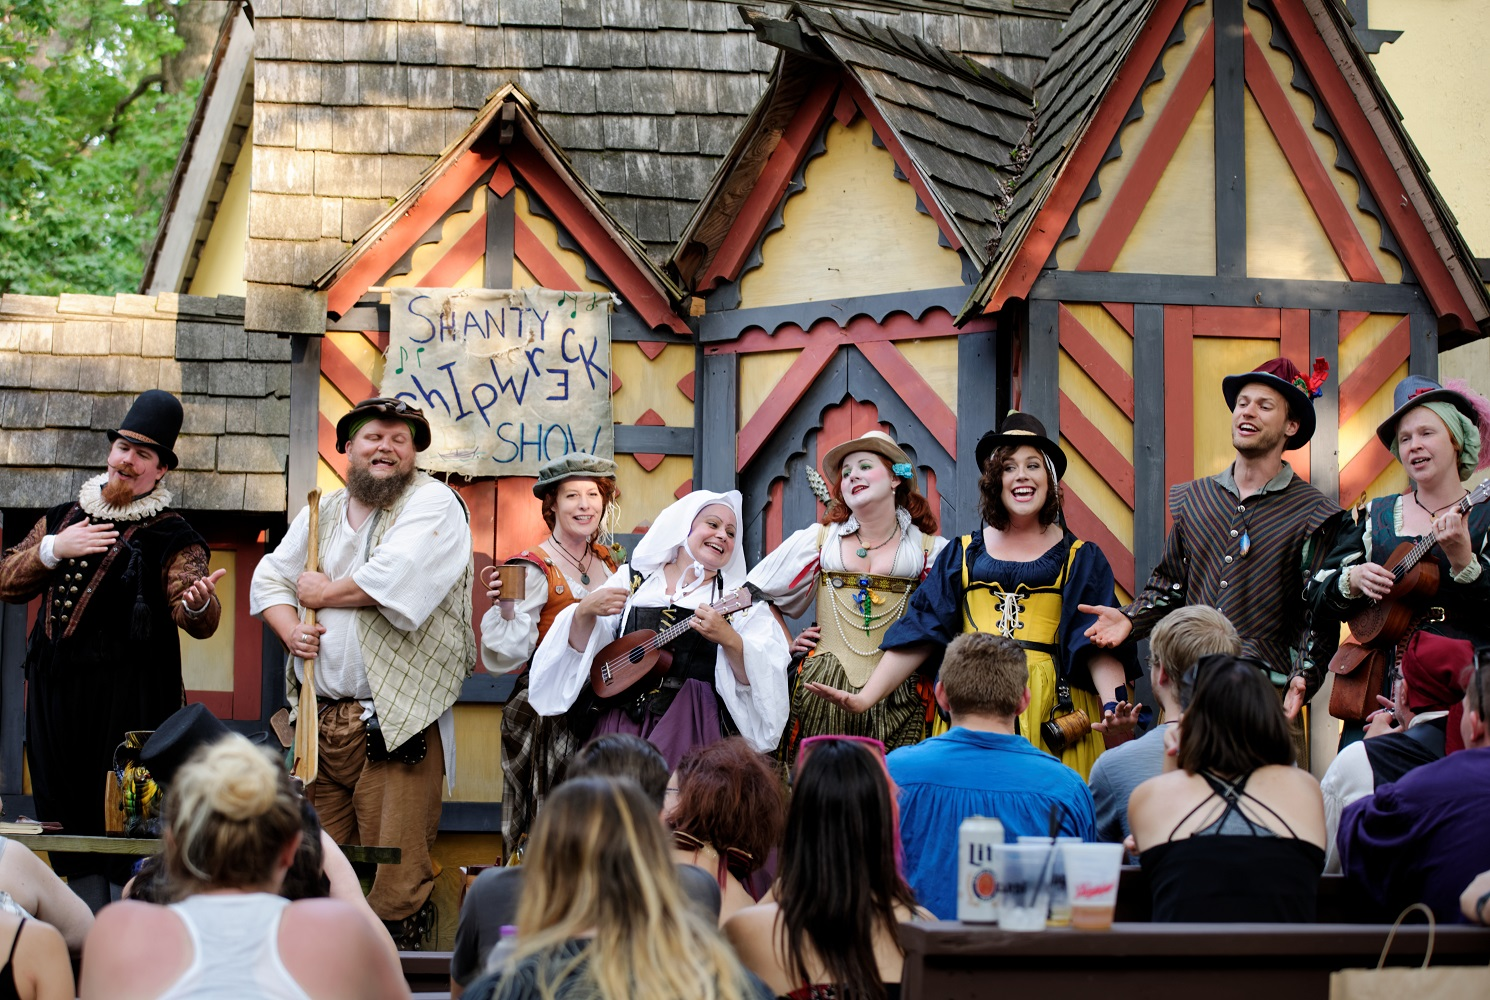 Entertainment: Shanty Shipwreck Show bawdy musical comedy